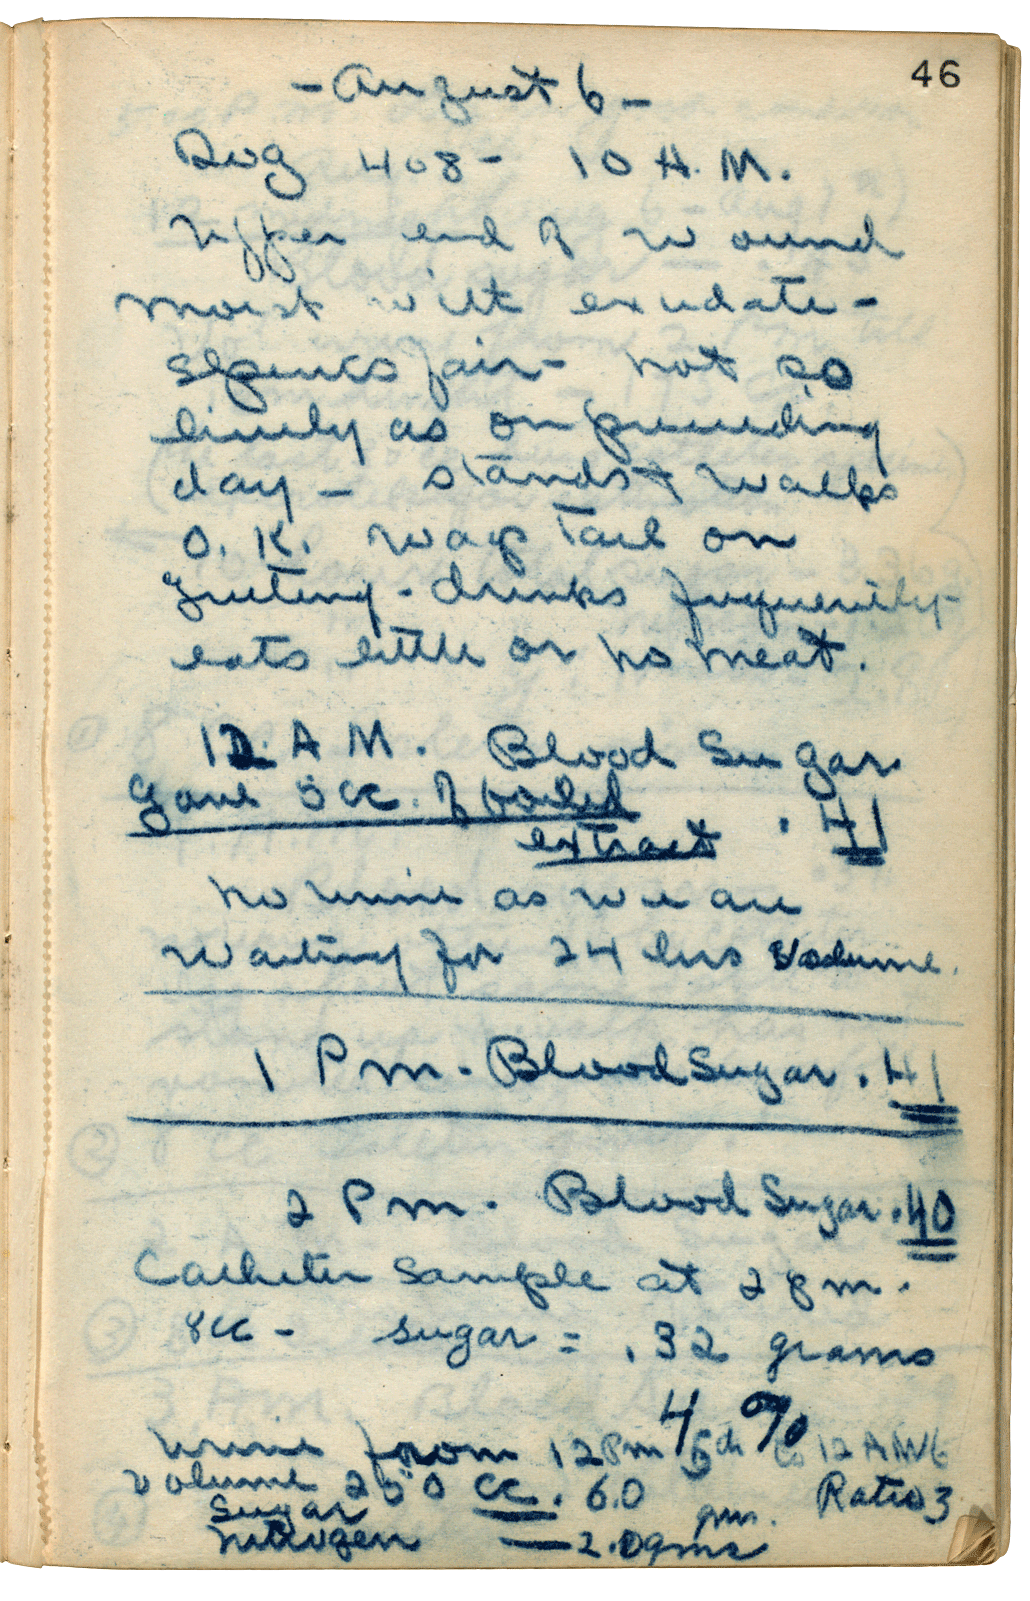 A page of lab notes dated August 6, 1921. Time-stamped entries record a dog's blood sugar levels and general condition.